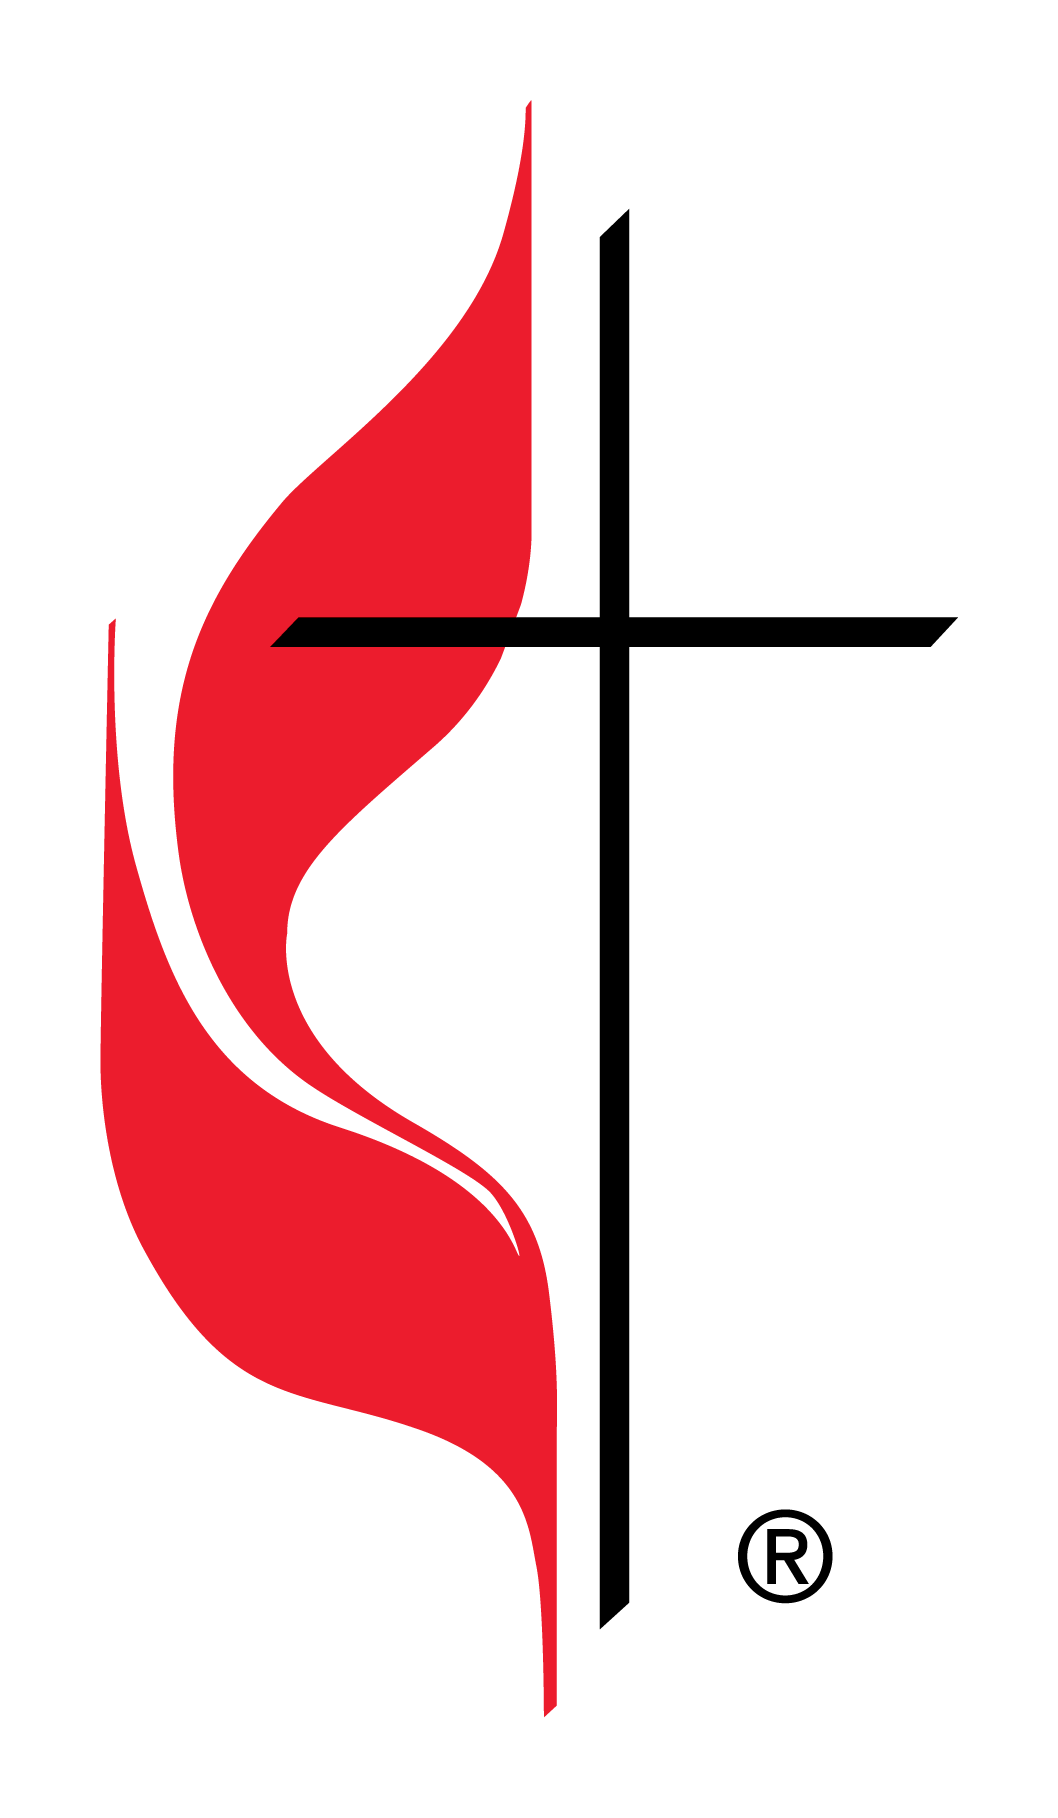 official cross and flame logo of the united methodist church [ 1058 x 1818 Pixel ]